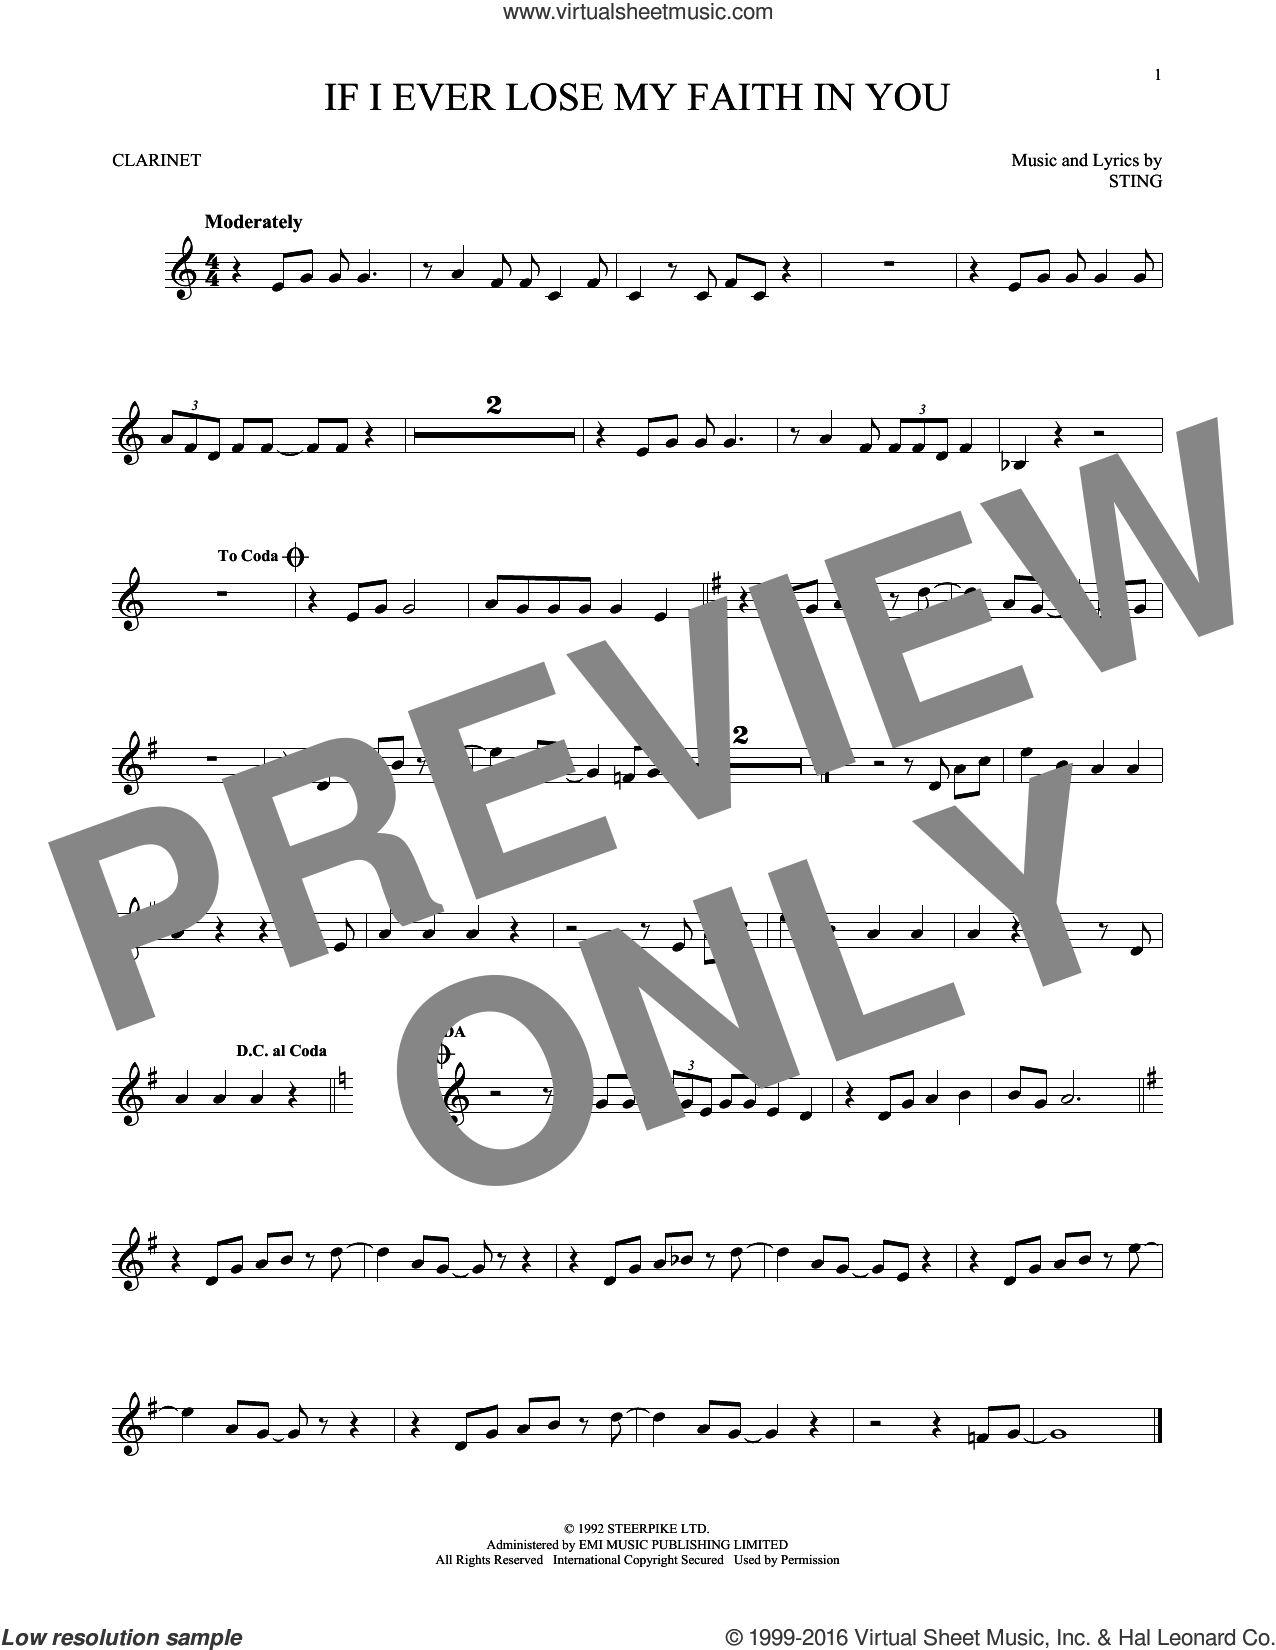 If I Ever Lose My Faith In You sheet music for clarinet solo by Sting, intermediate skill level